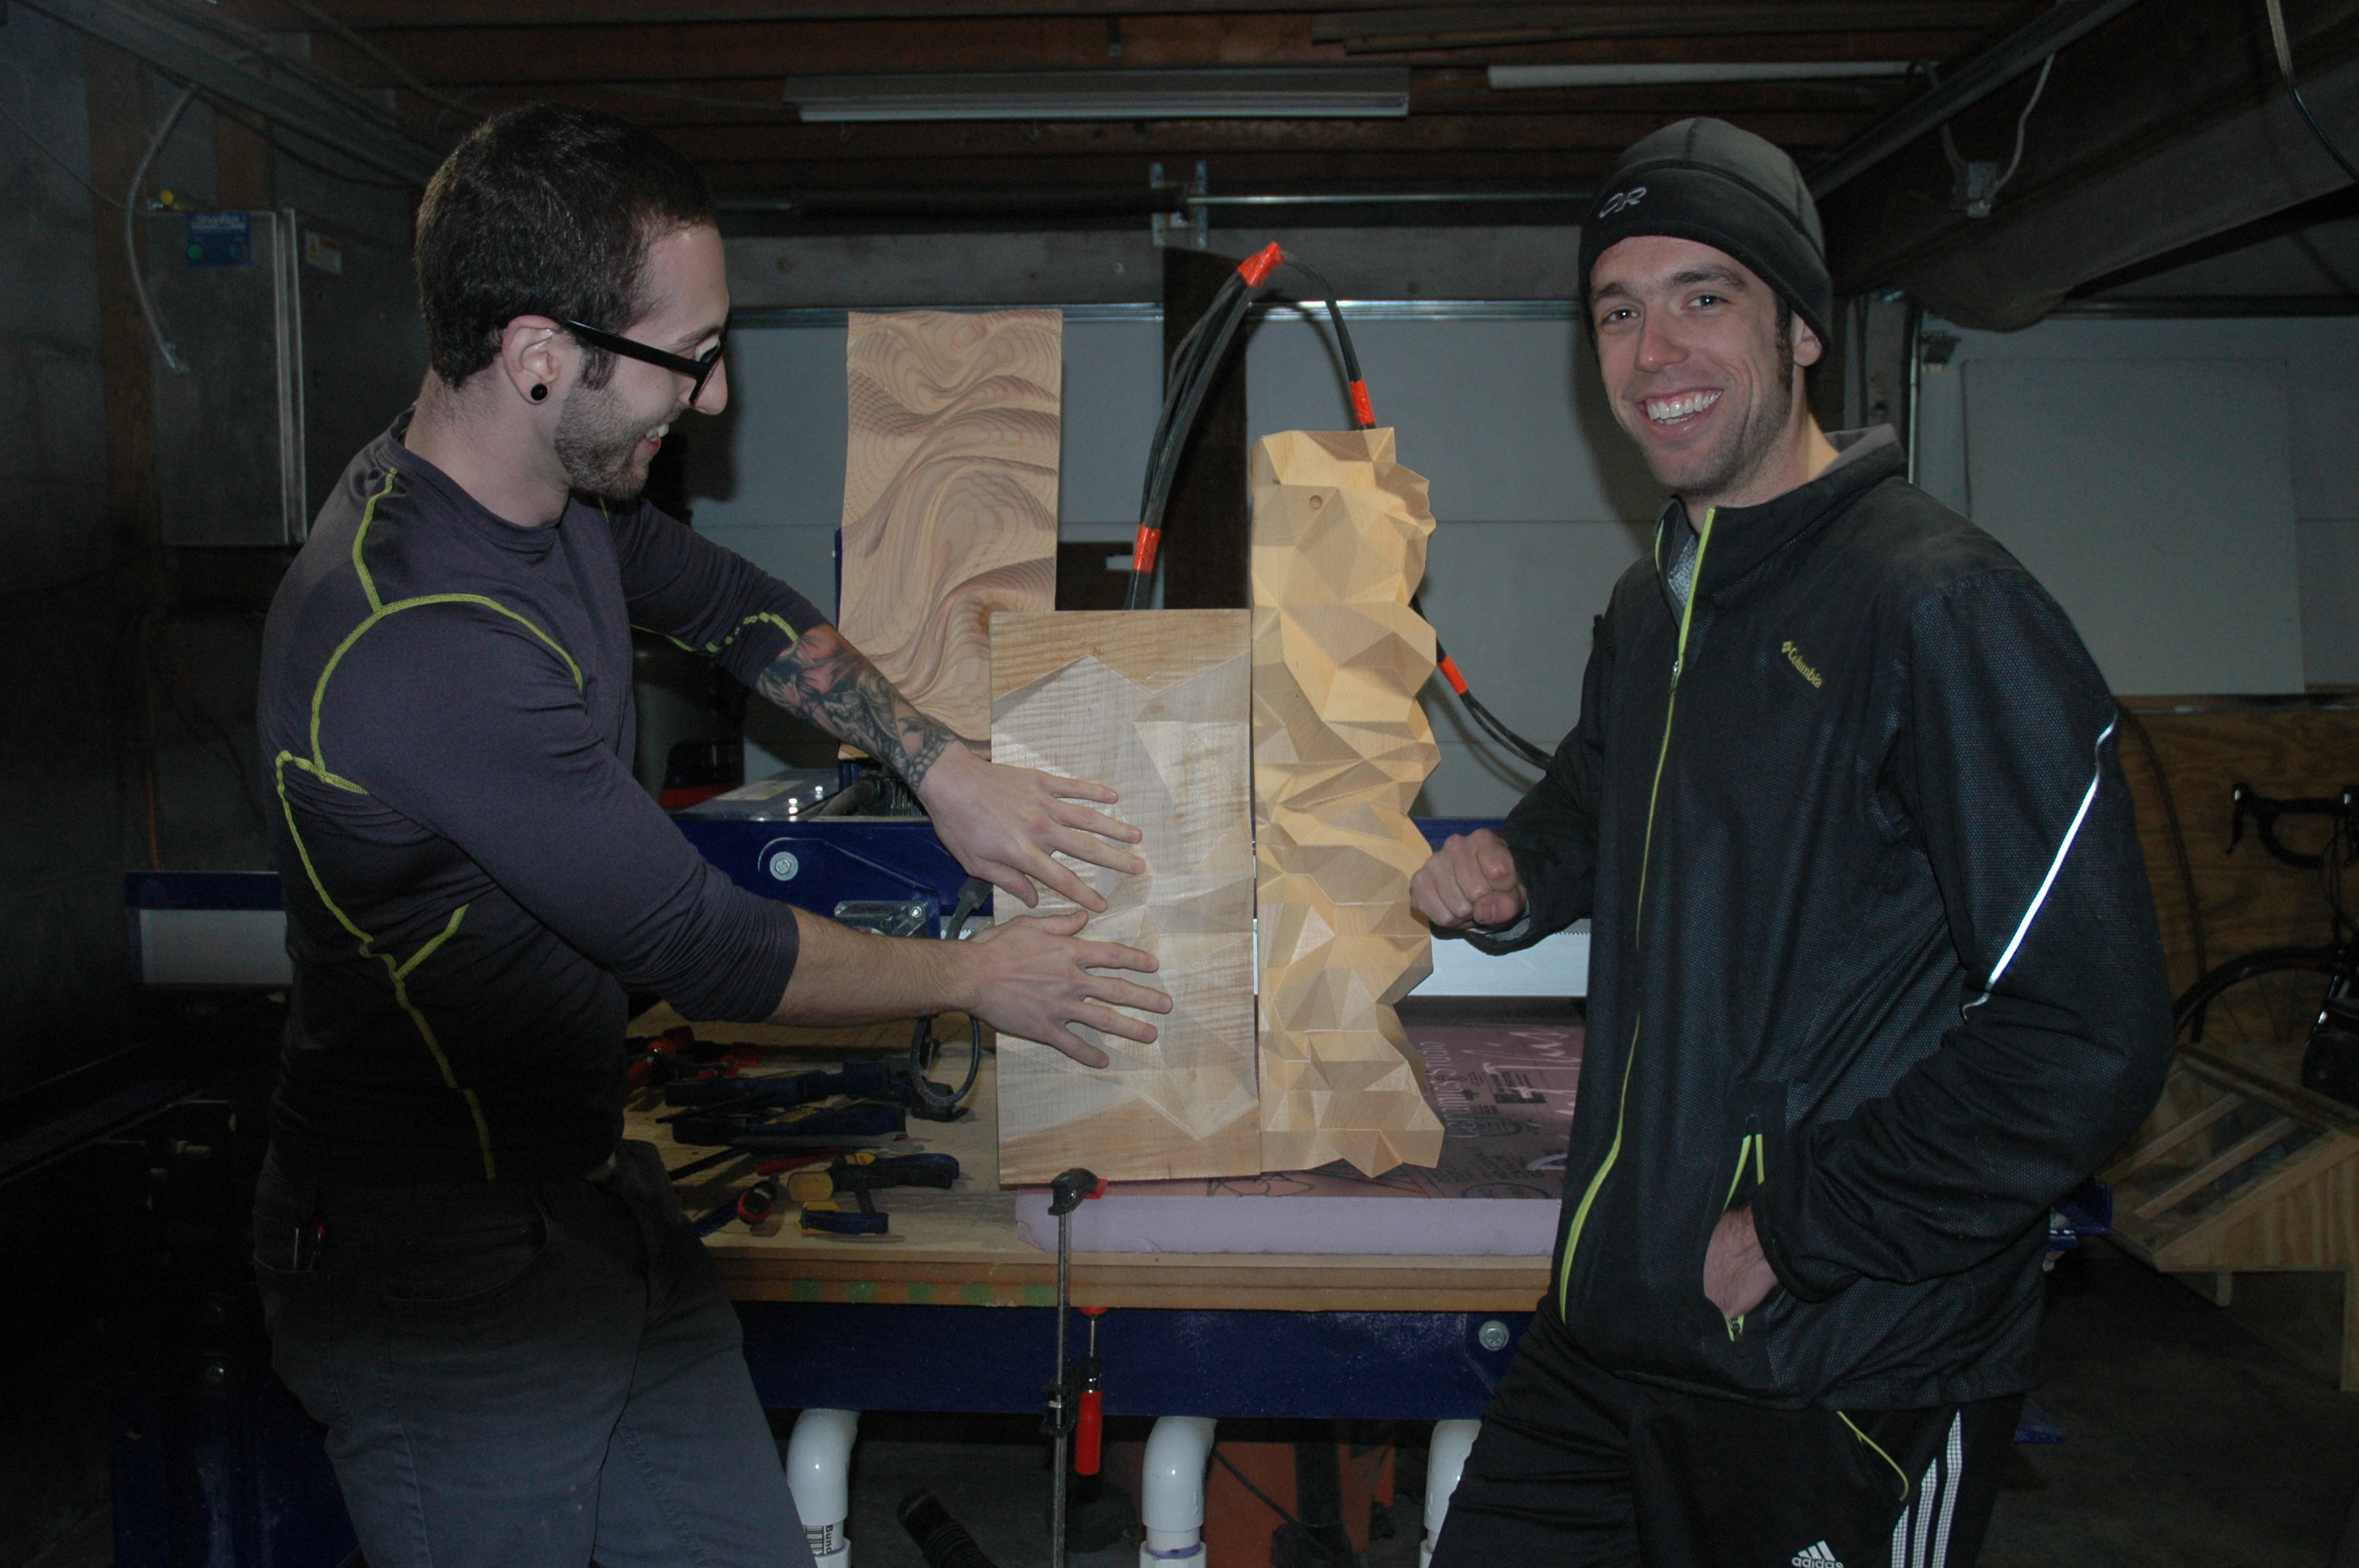 Kyle Bendle, left, and Brad Bolte, who met while studying architecture, use reclaimed wood from Community Forklift to create their unique sculptures.